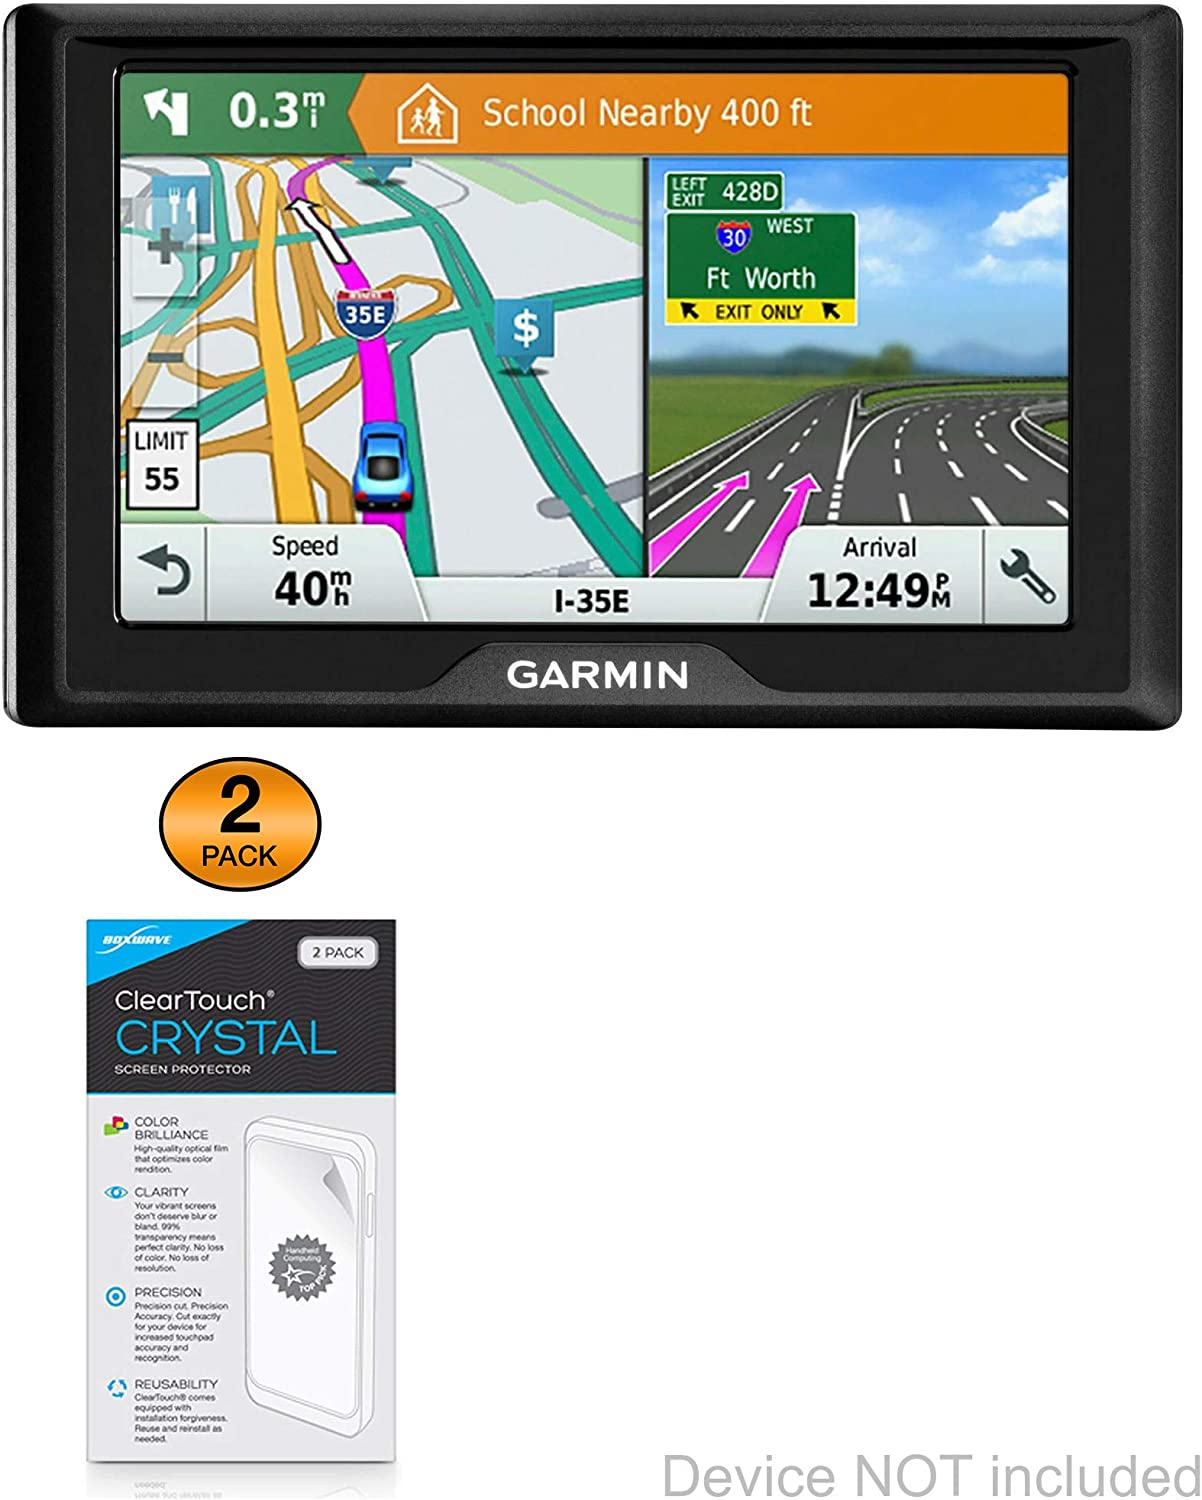 HD Film Skin BoxWave Garmin Drive 50 Screen Protector, ClearTouch Crystal Shields from Scratches for Garmin Drive 50 2-Pack